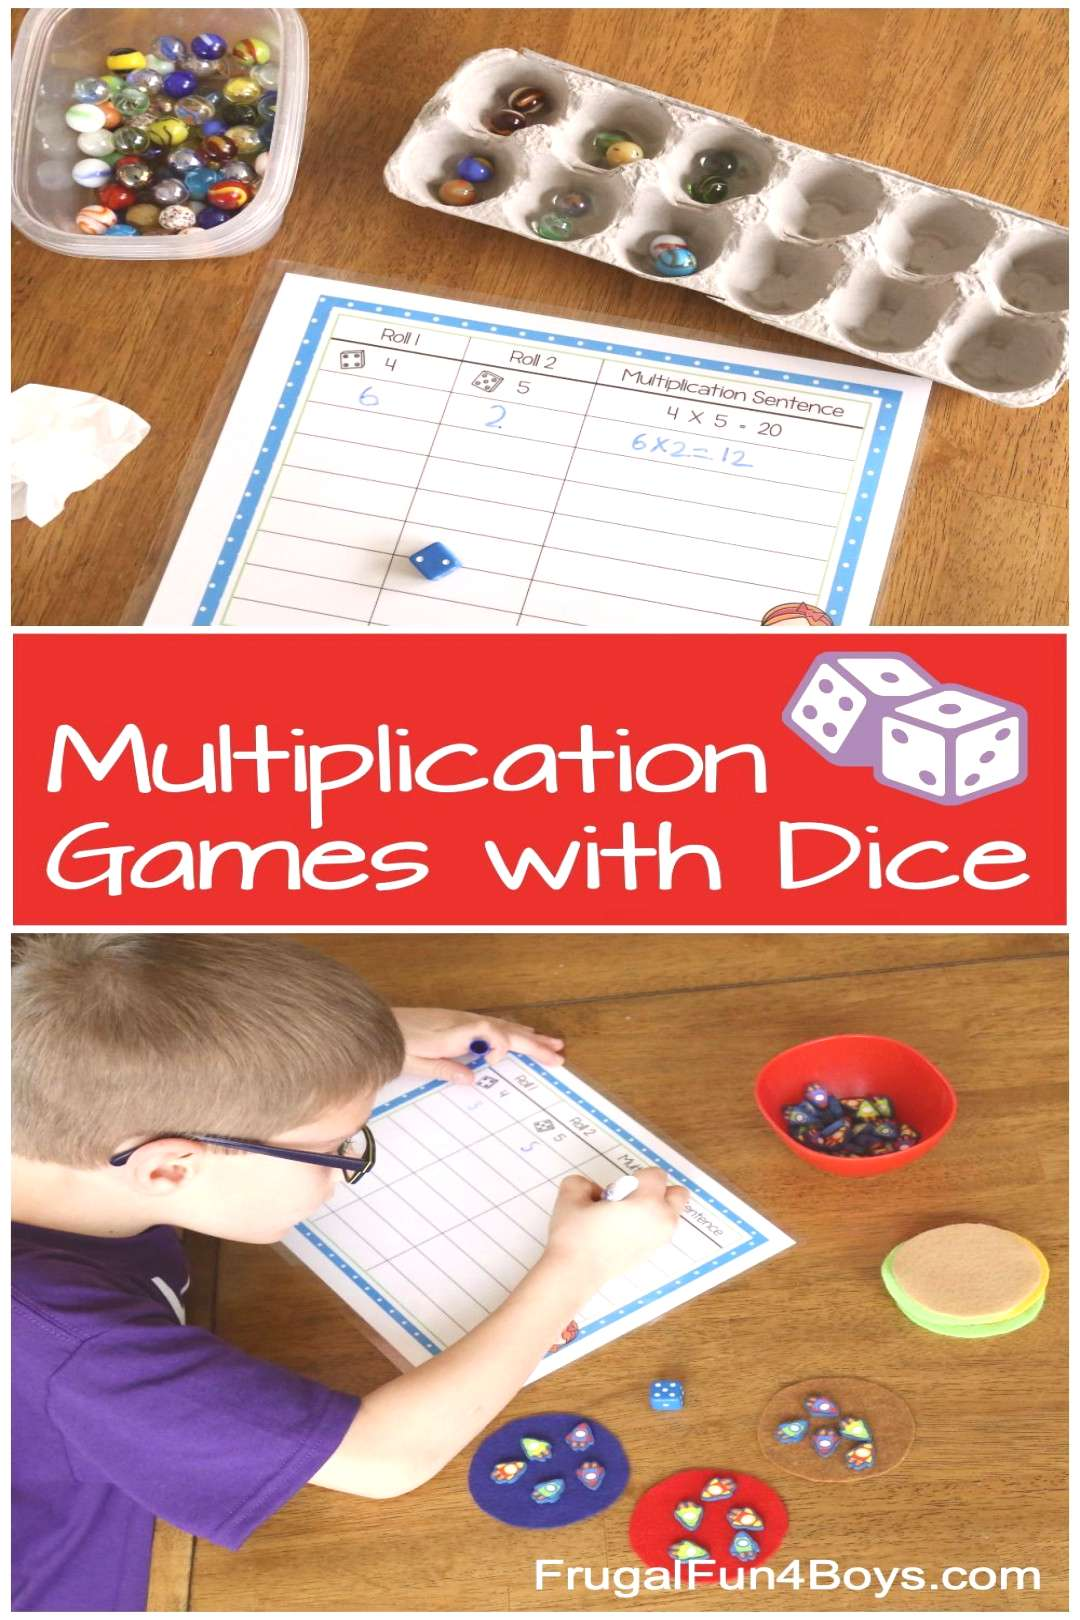 Physical education   multiplication games, multiplication flashcards, lattice multiplication, multi